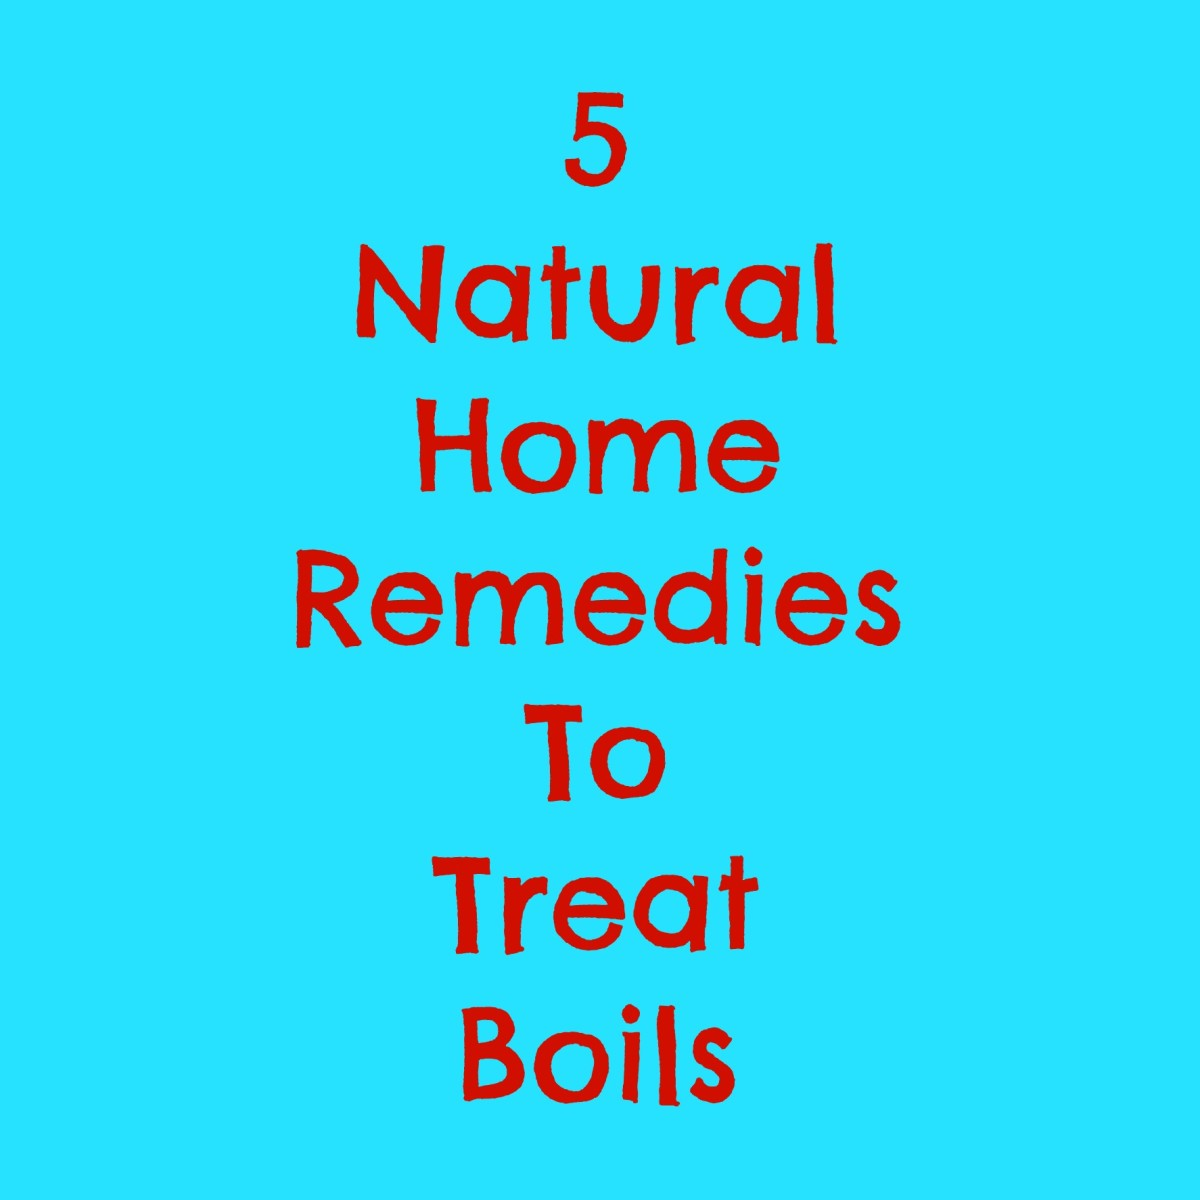 5 Natural Home Remedies For Boils